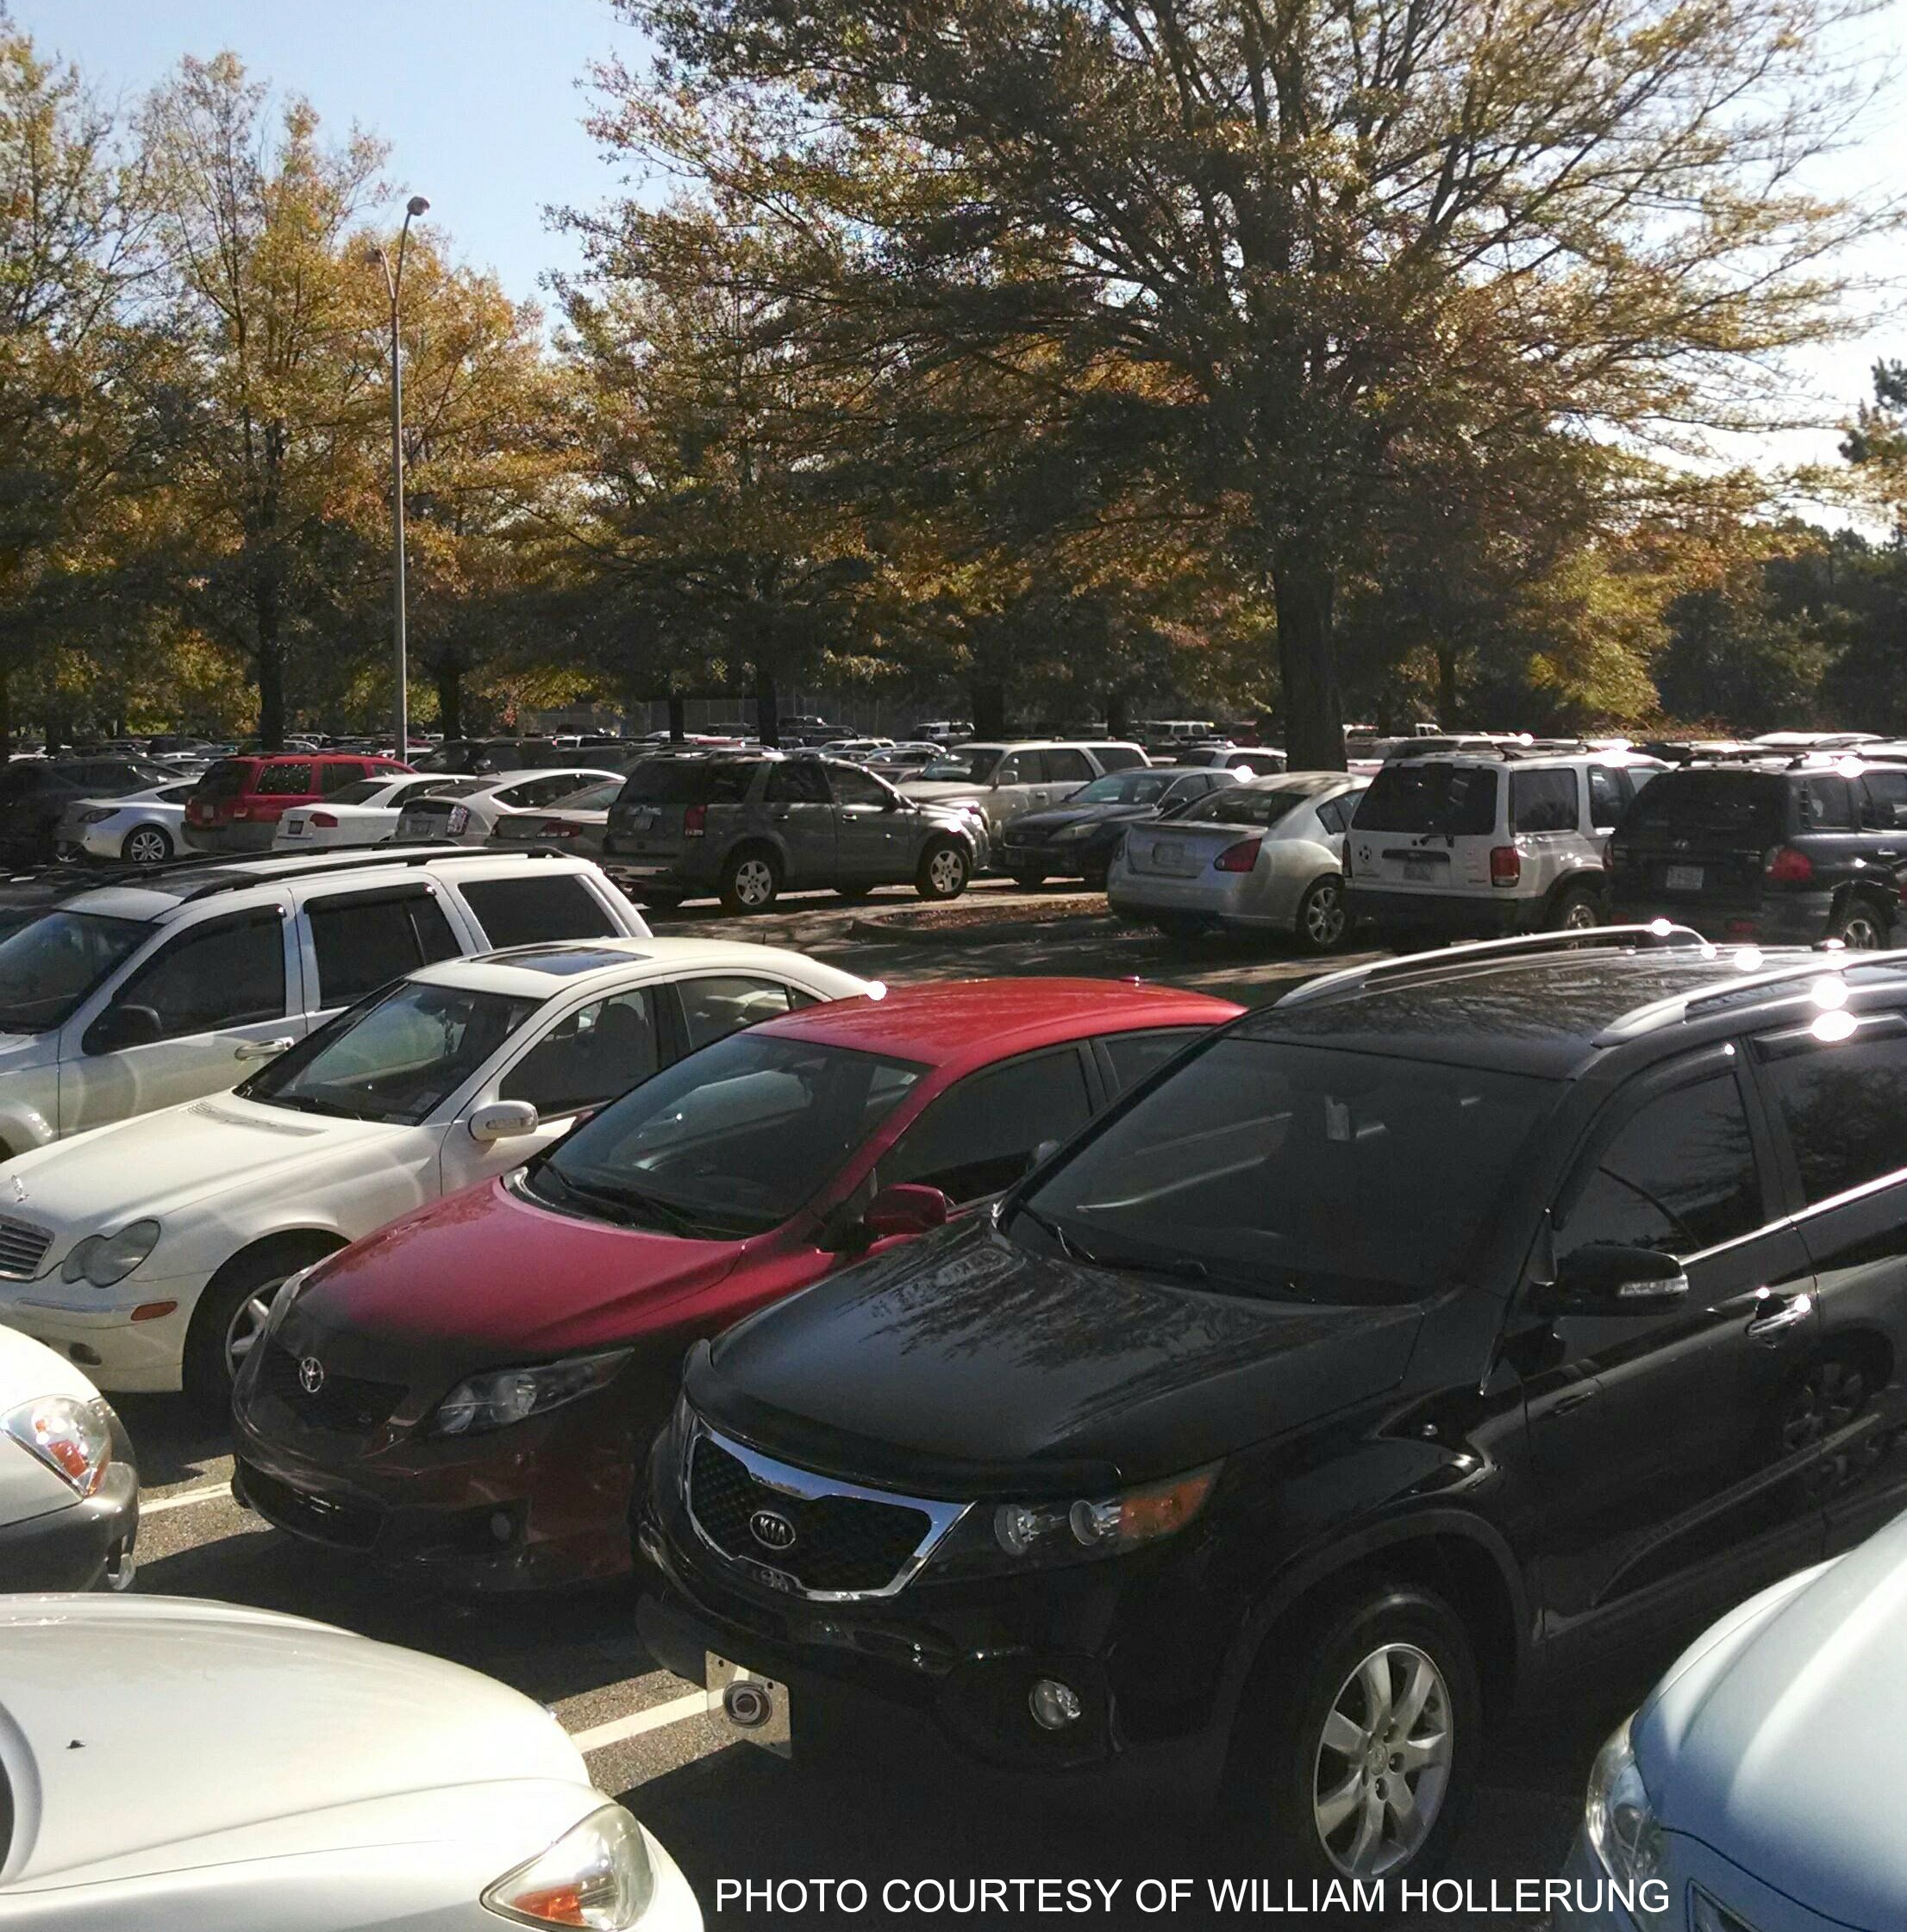 An early afternoon photo of the student parking lot. Every morning, the parking is bustling with students and cars parking and arriving to school in order to learn.